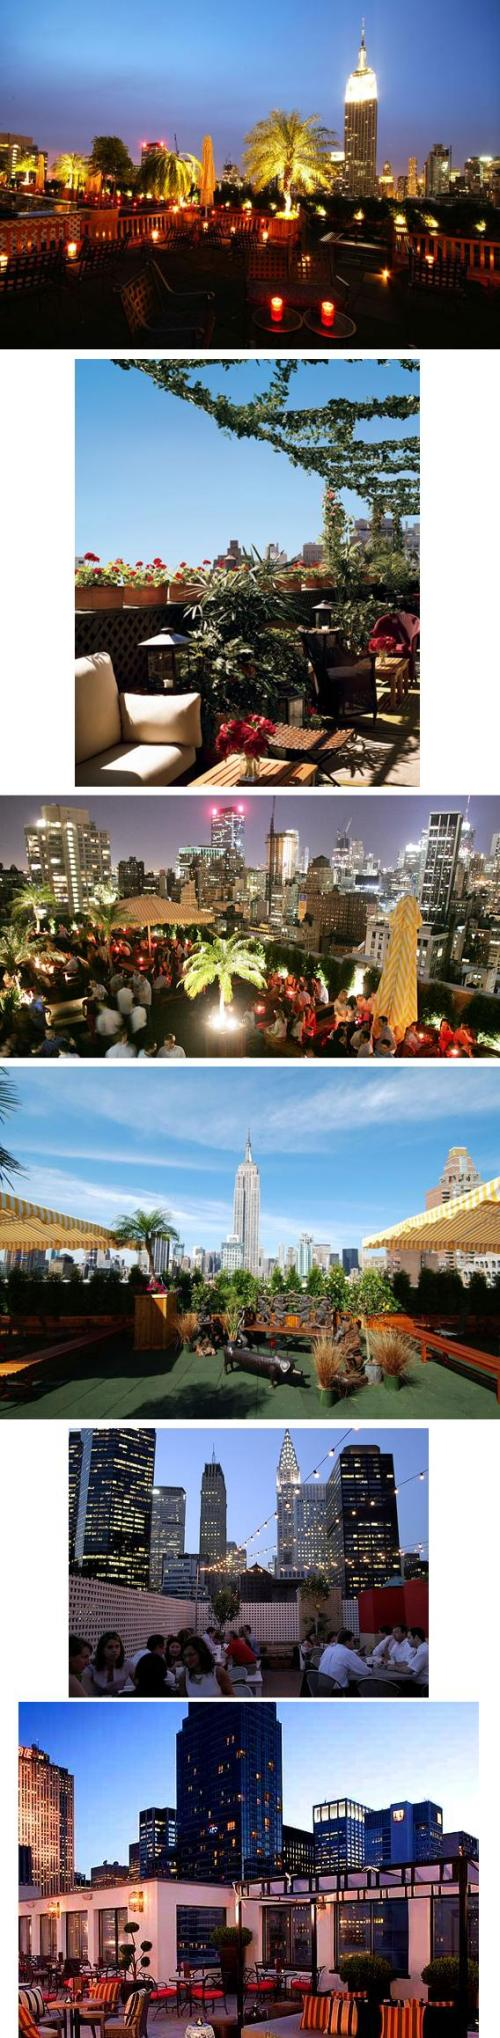 New York Rooftop Bars